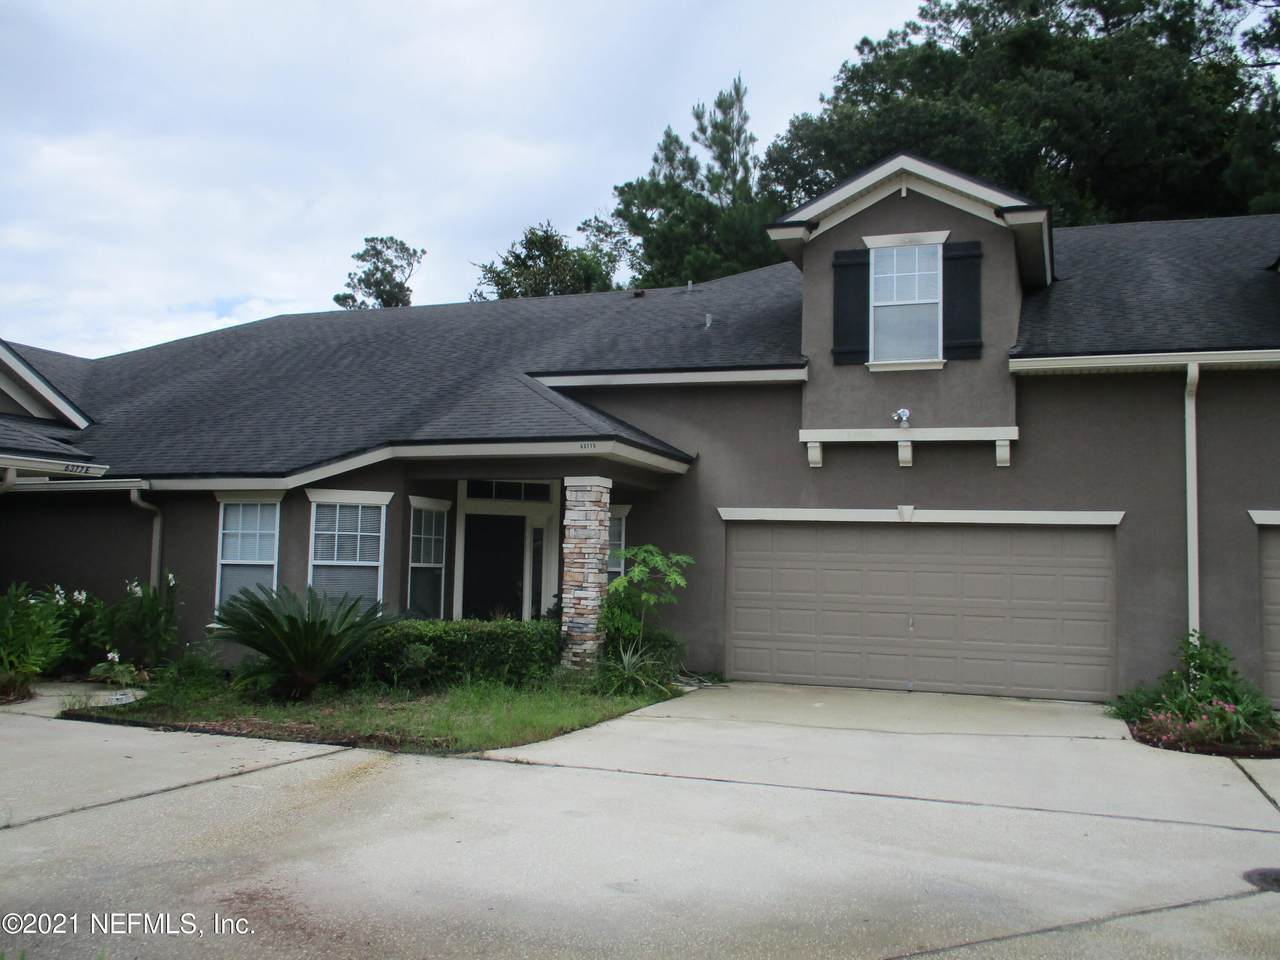 6377 Island Forest Dr - Photo 1